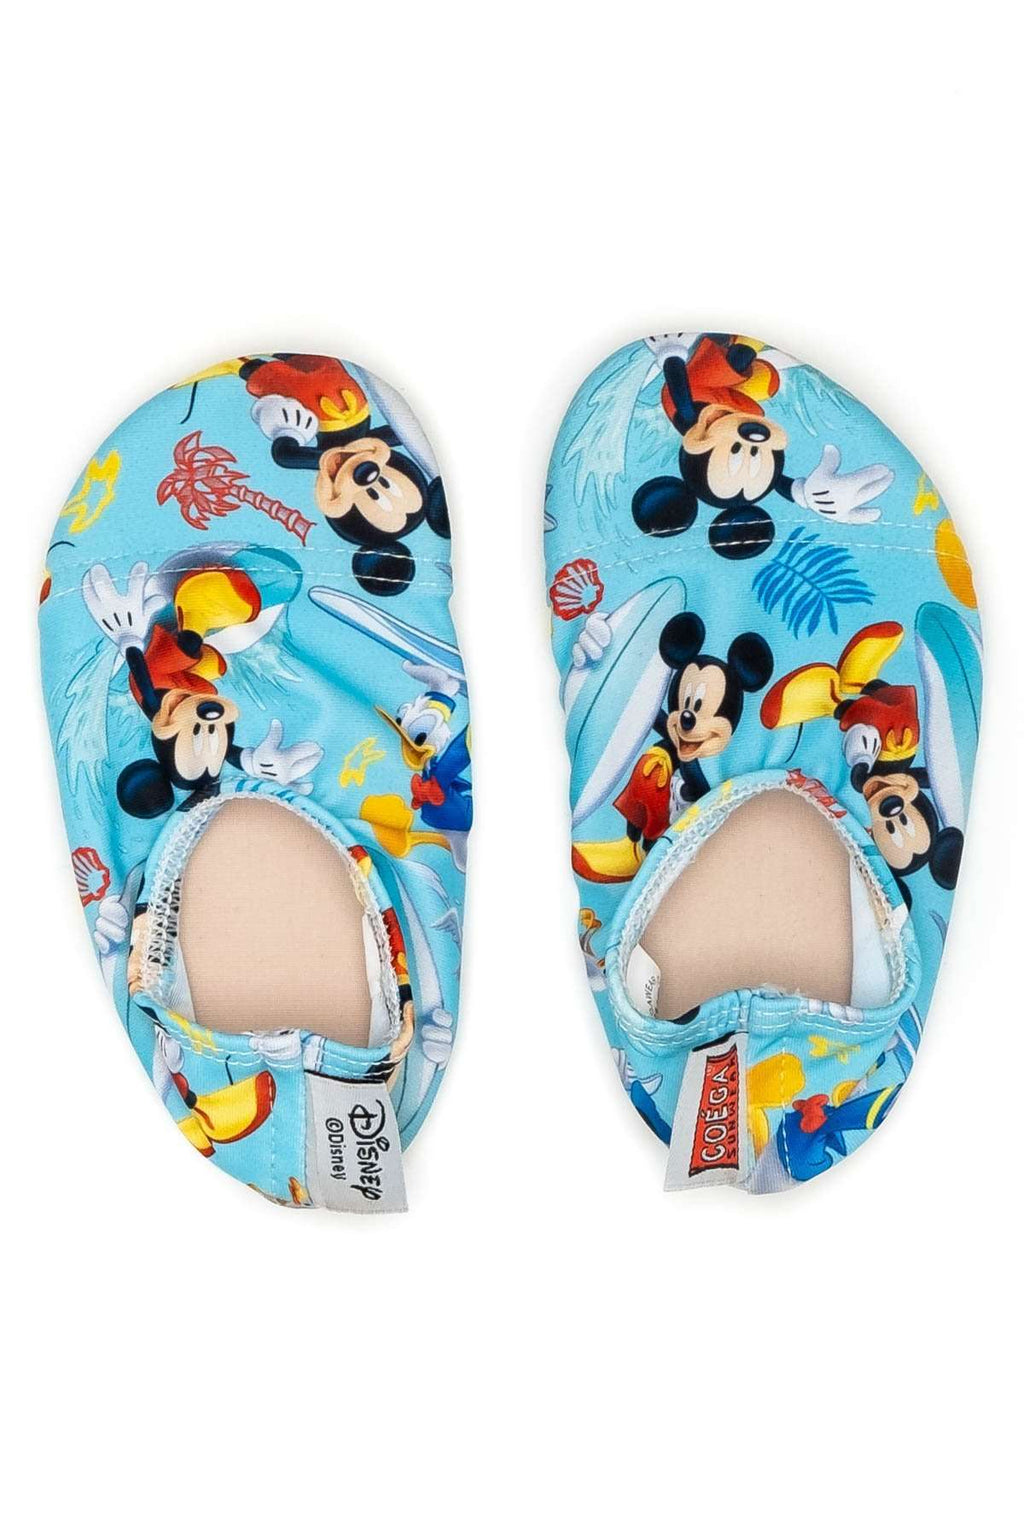 Teal Mickey Surf / Infant